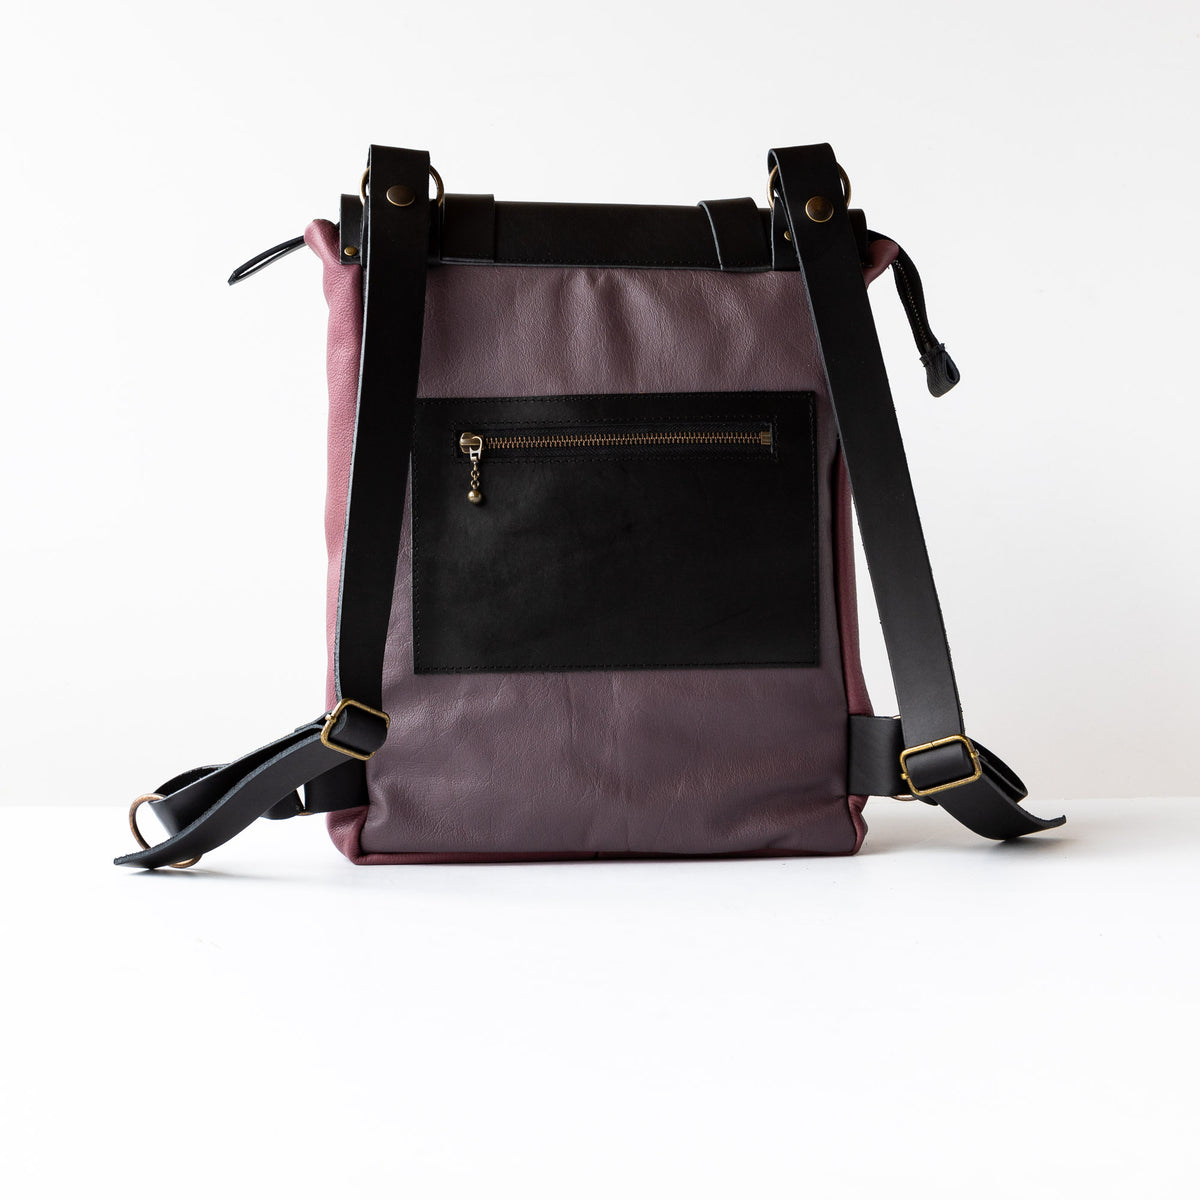 Rear View - Purple & Black Handcrafted Leather Backpack / Crossbody Bag - Sold by Chic & Basta